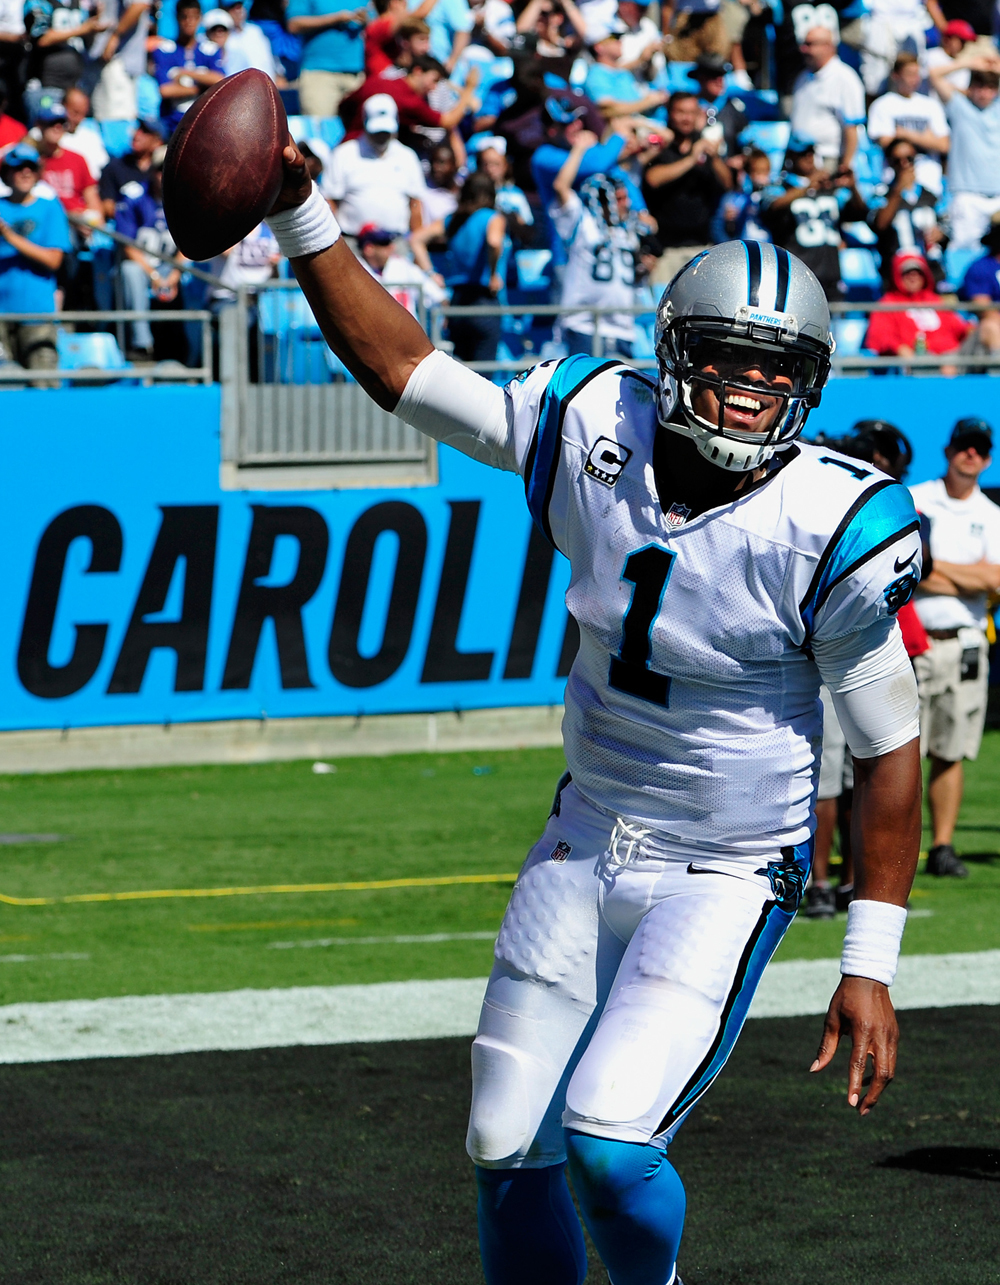 Carolina 38, New York 0